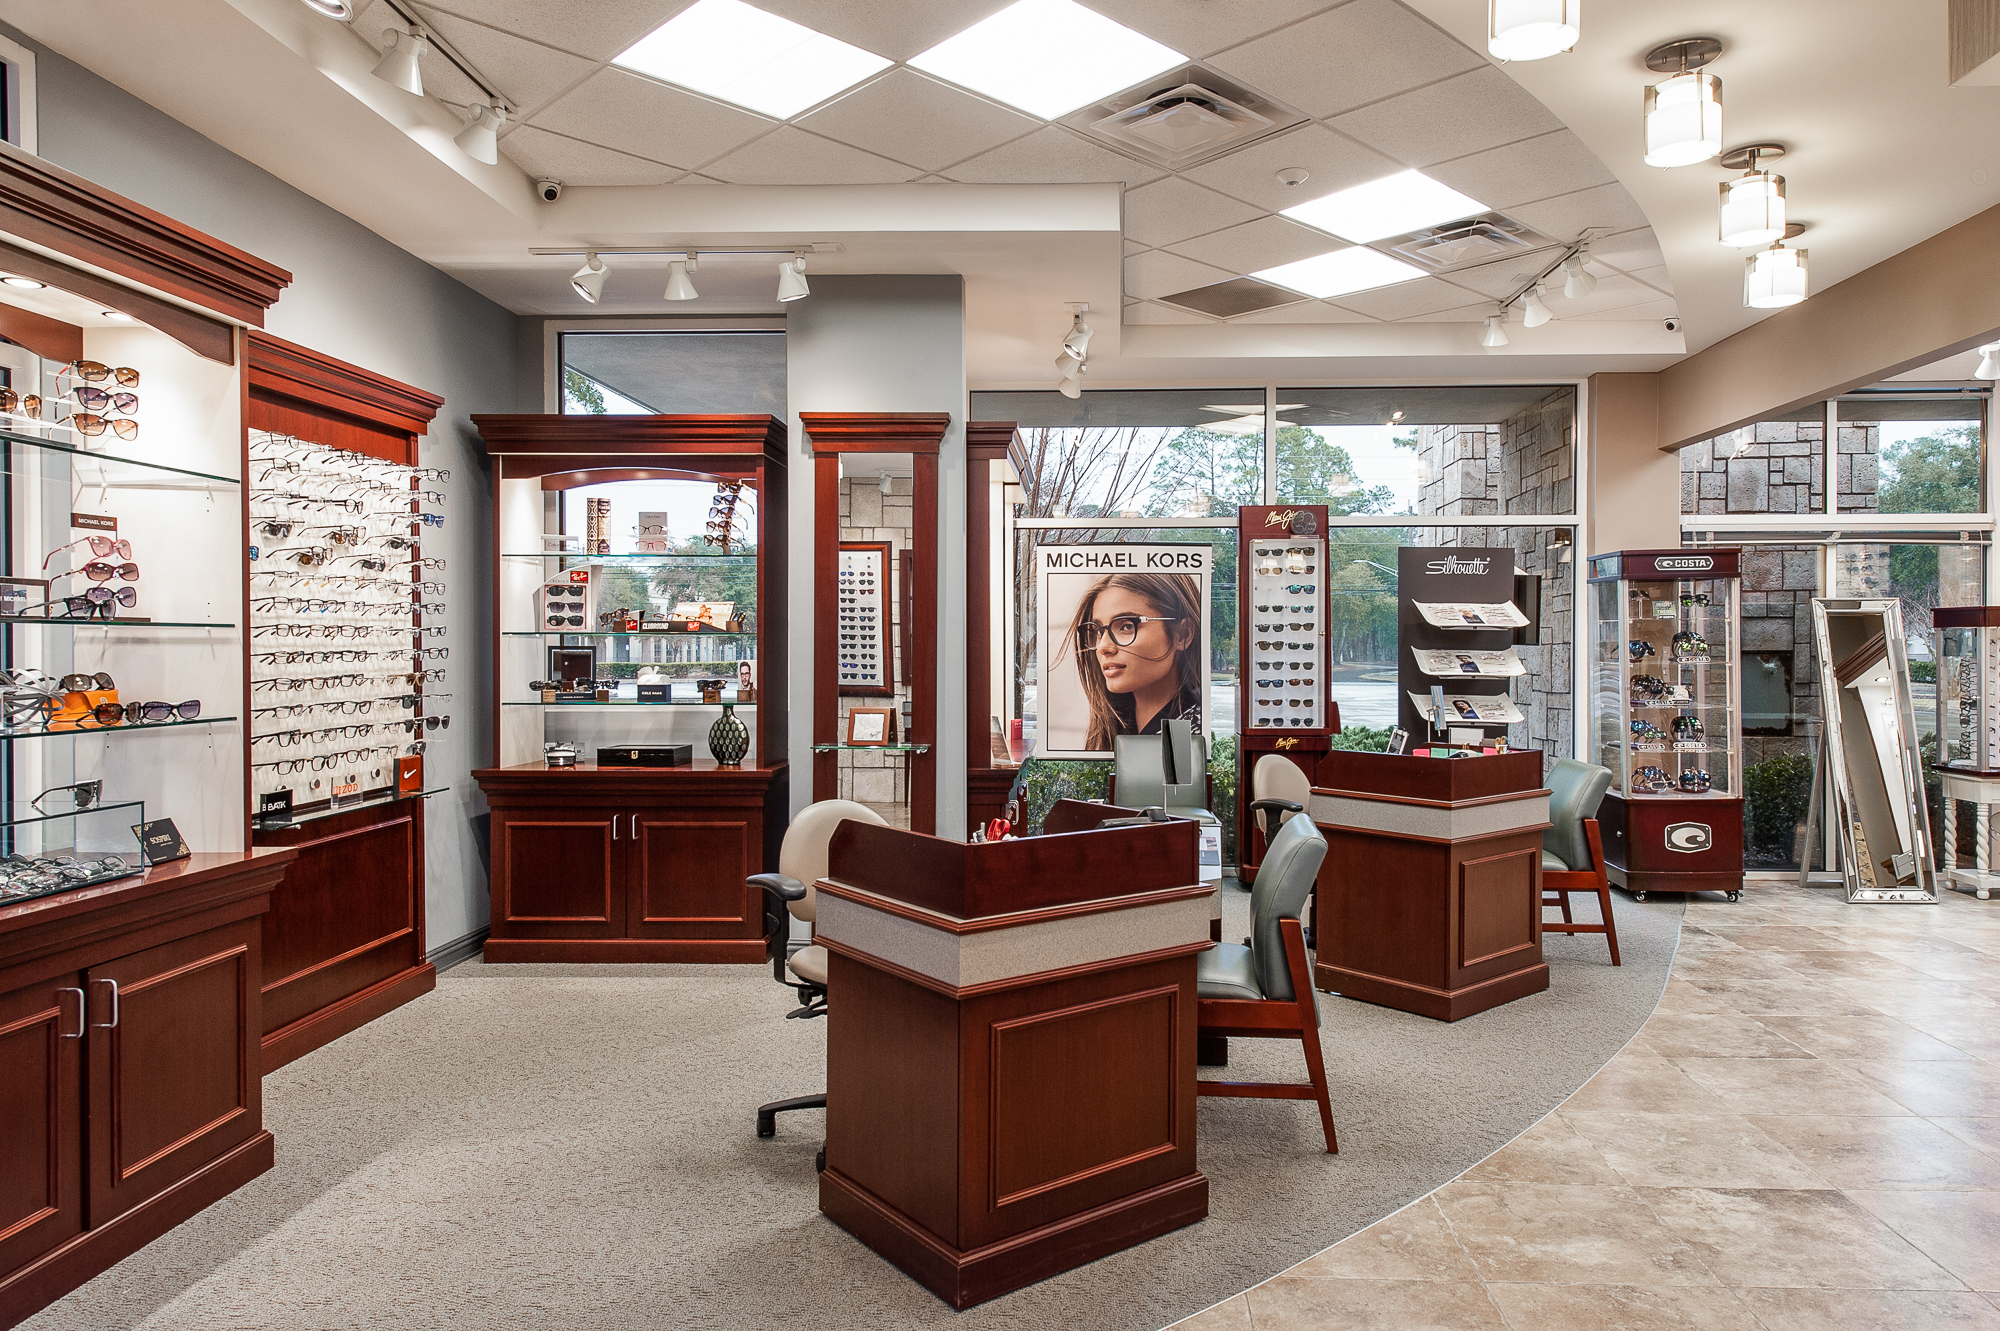 Micamy Design Studio_Interior Design_Clay Eye_Mandarin_Opthamology_Commercial_Office_Medical_Eye Care_Renovation_Crossville_Interiors_Artwork_Coastal_Crossville_Eykon1.jpg